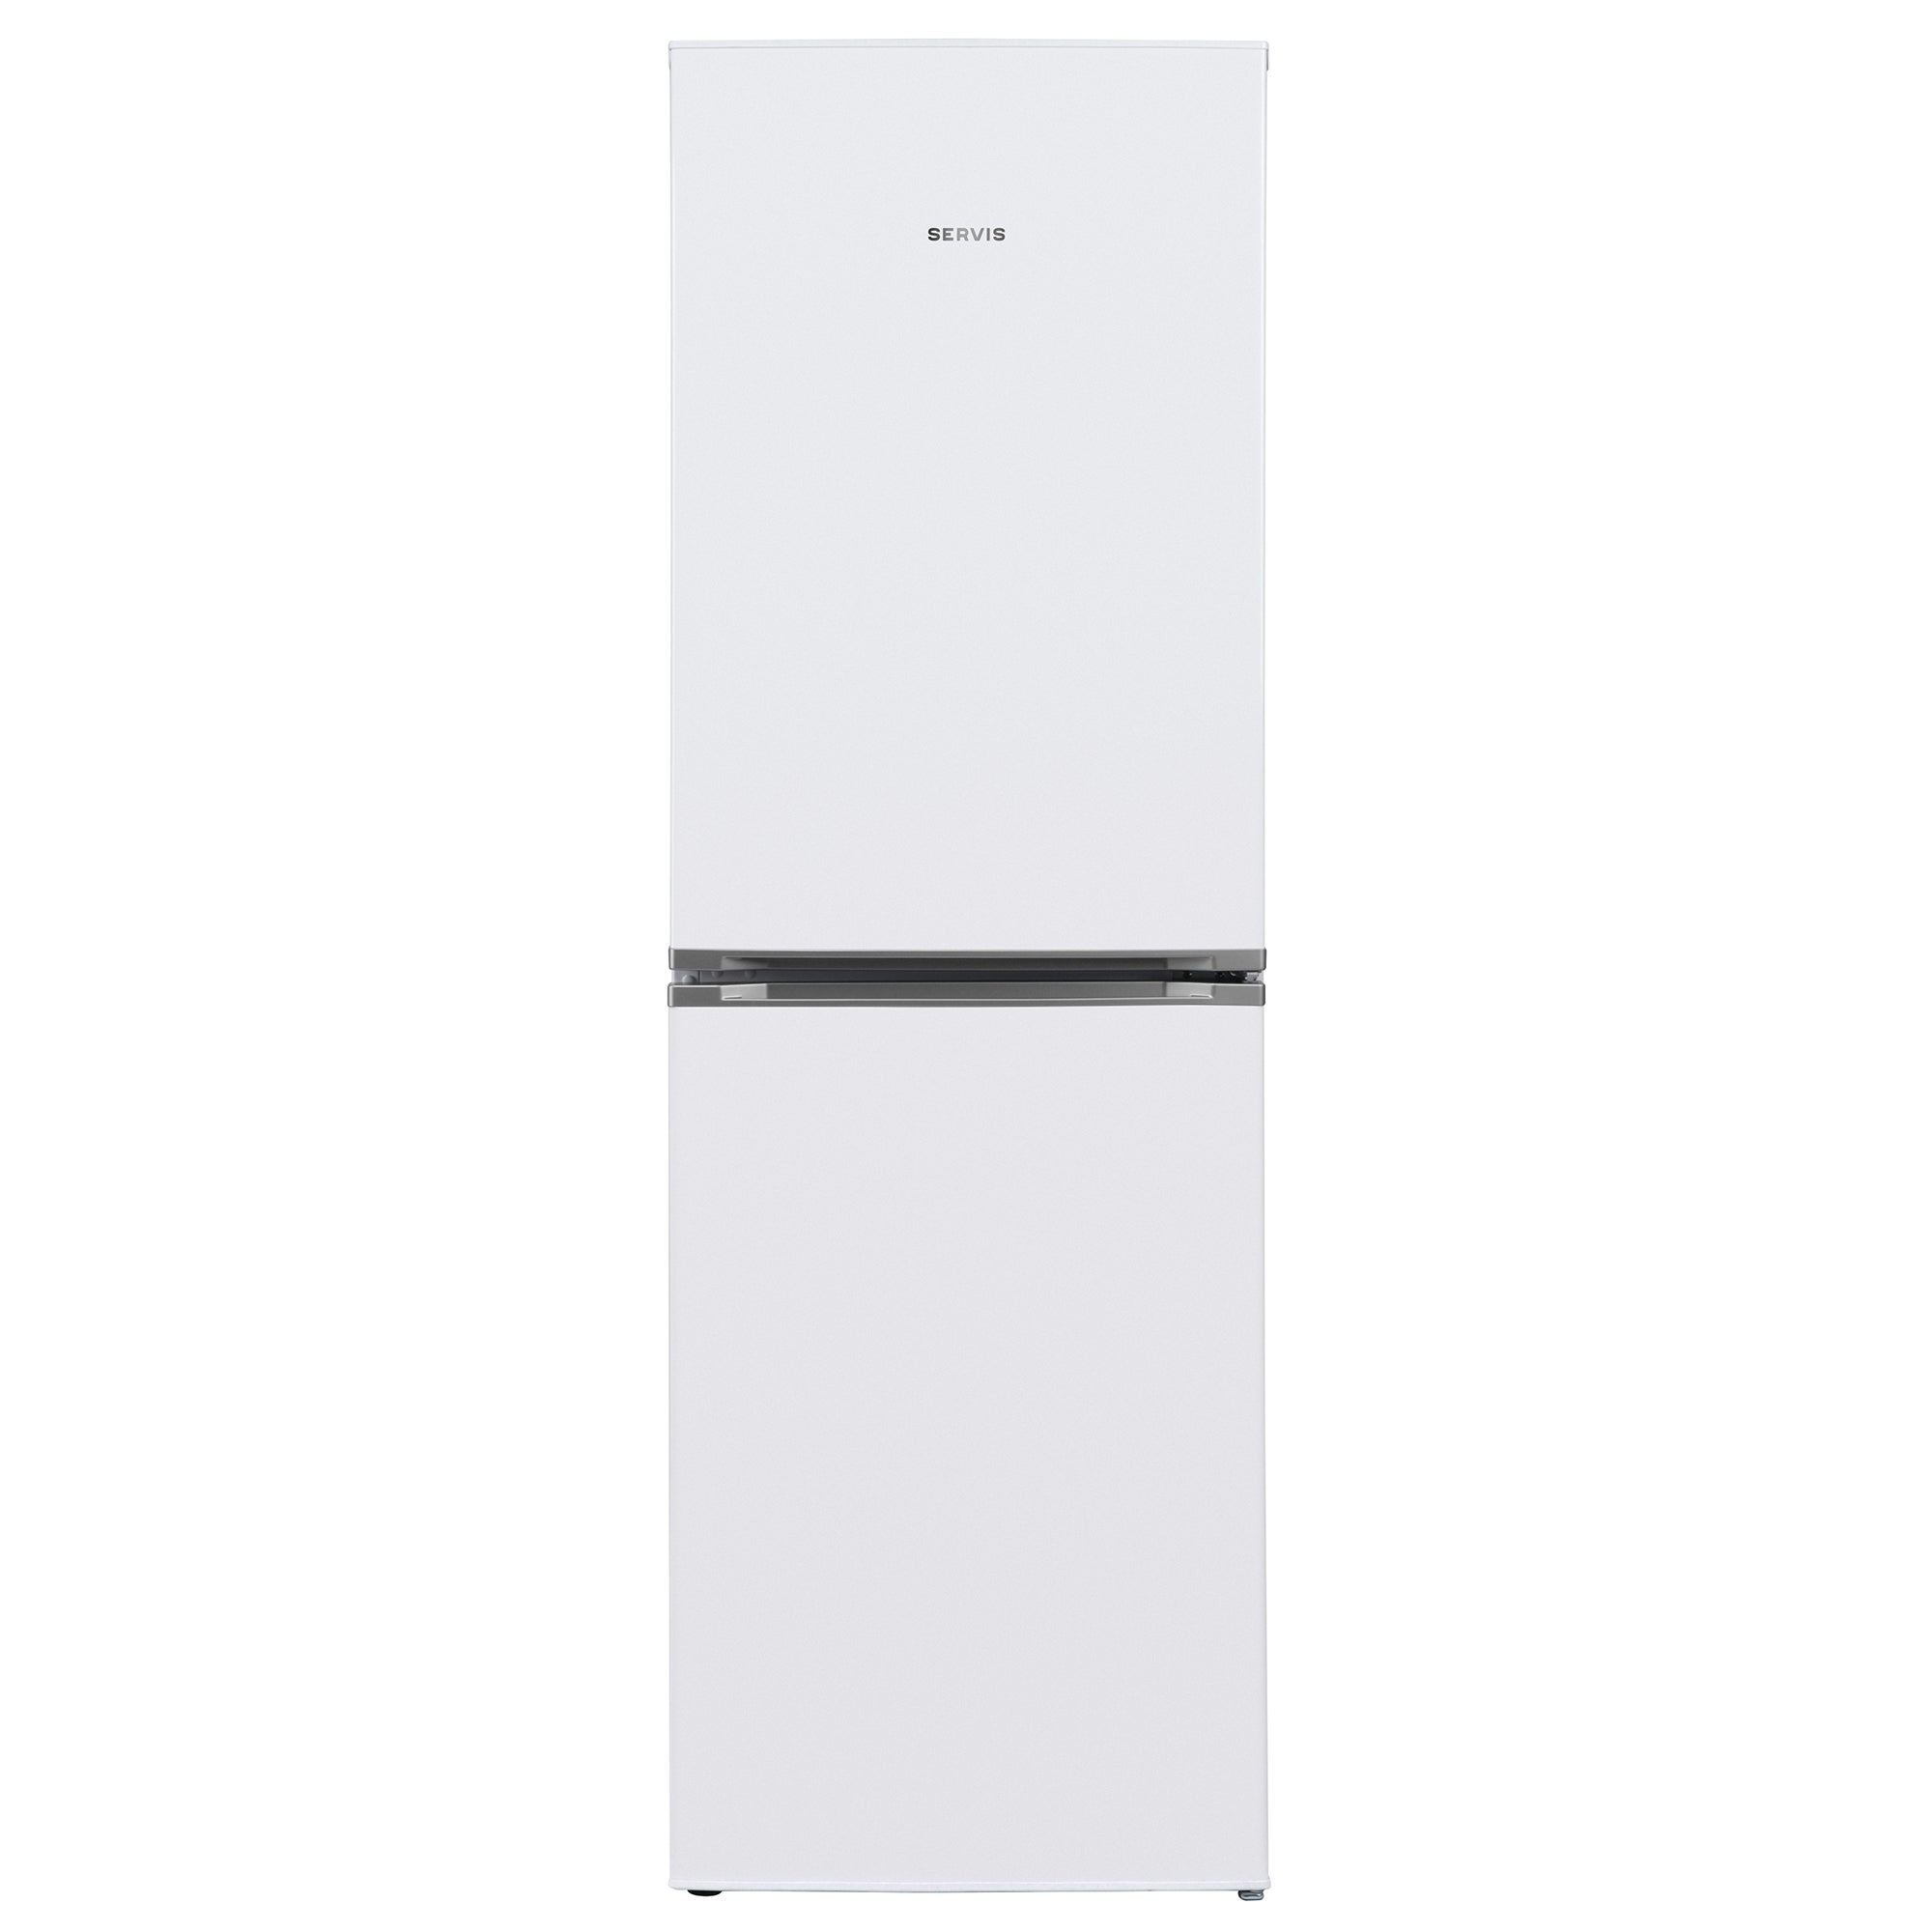 Servis CF55170FFW White Combi Fridge Freezer White